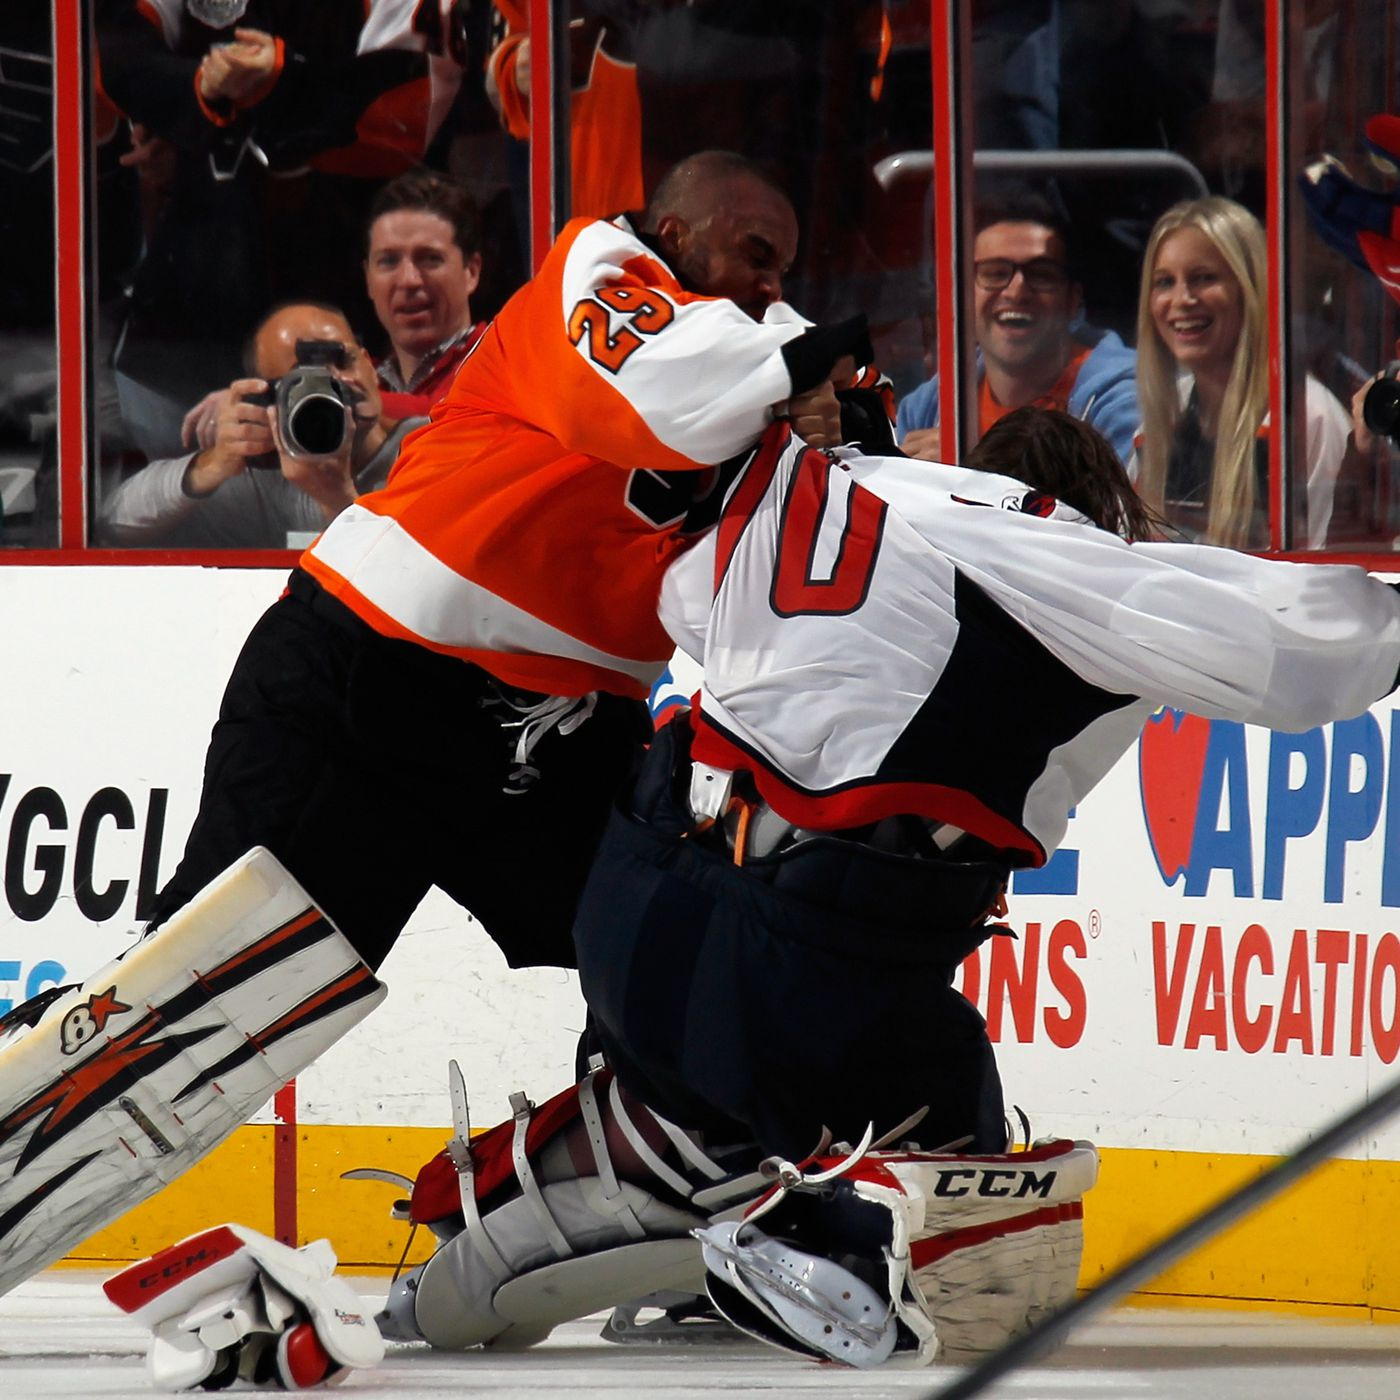 Goalie Fight Ray Emery Fights Braden Holtby During Line Brawl Sbnation Com